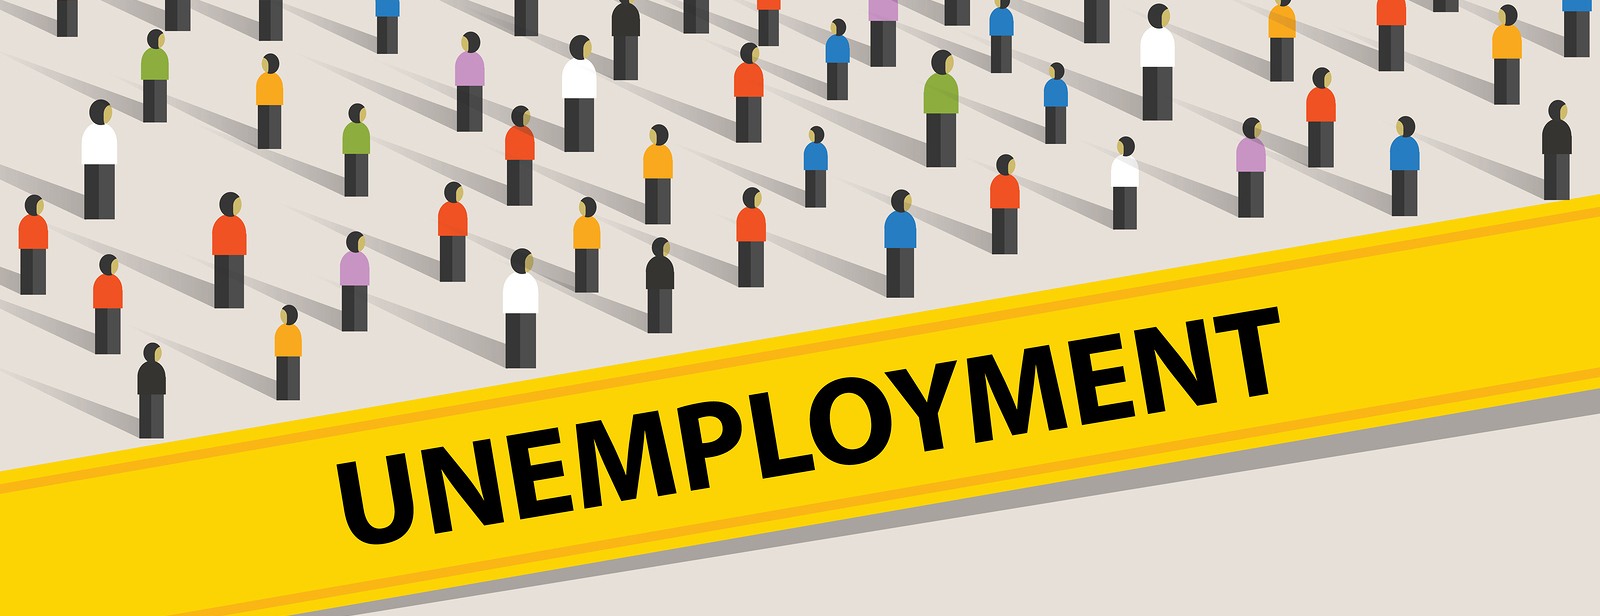 vietnam unemployment rate decreases in the begining of this year.